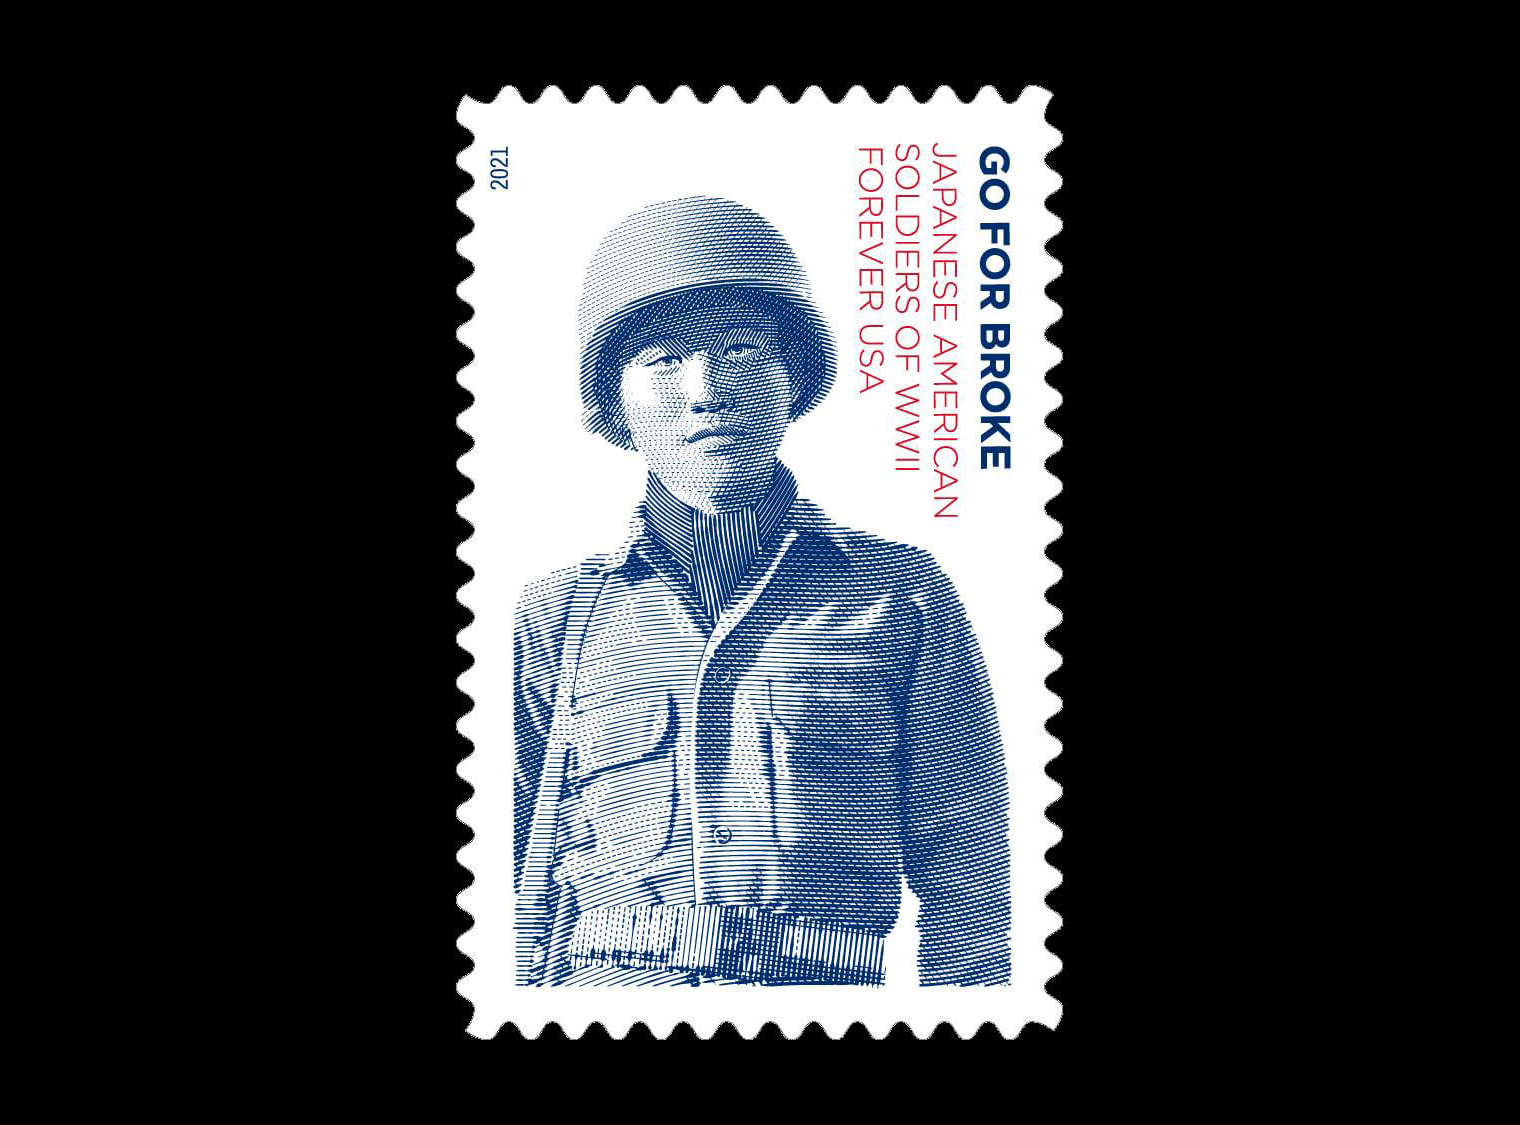 A stamp featuring a Japanese soldier of the 442nd Go For Broke regiment from WWII